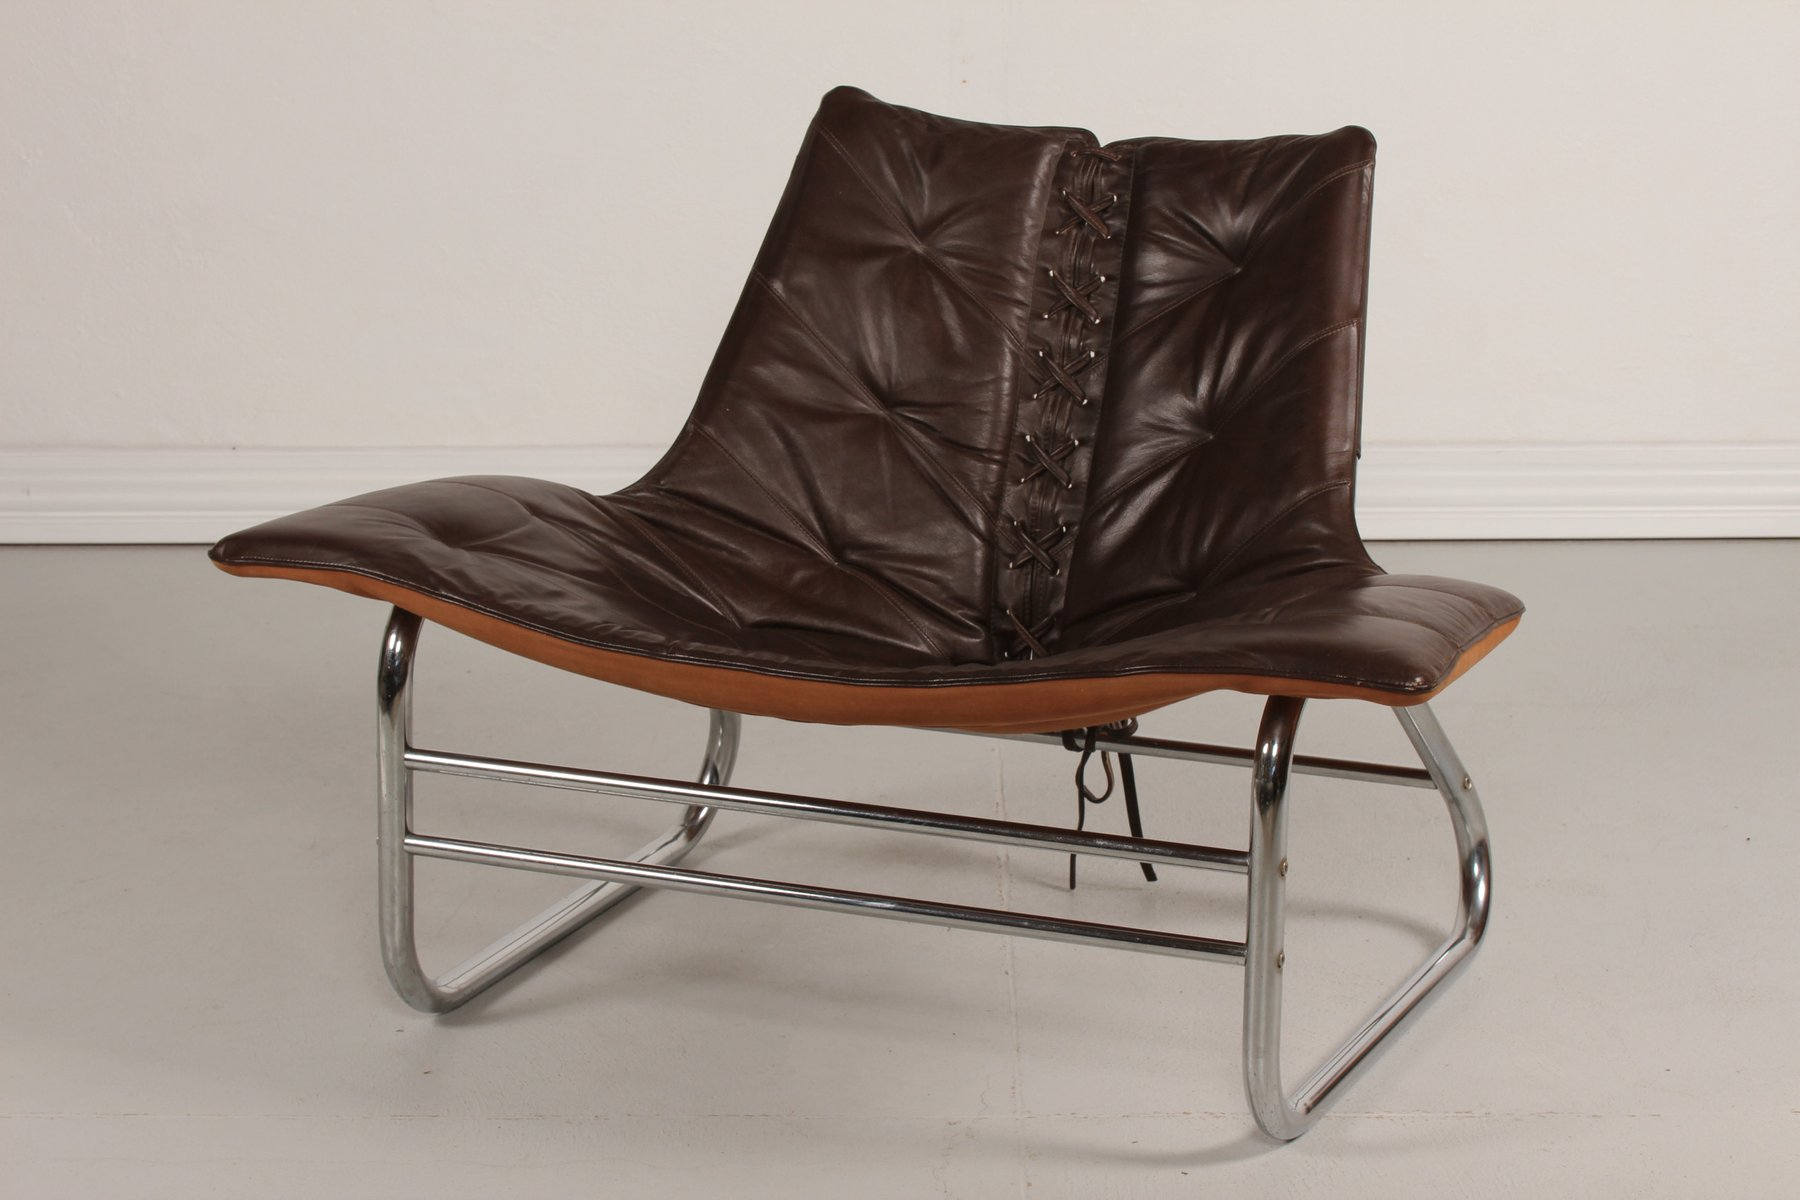 antique metal chairs for sale hair salon chair mats vintage and brown leather danish 1970s